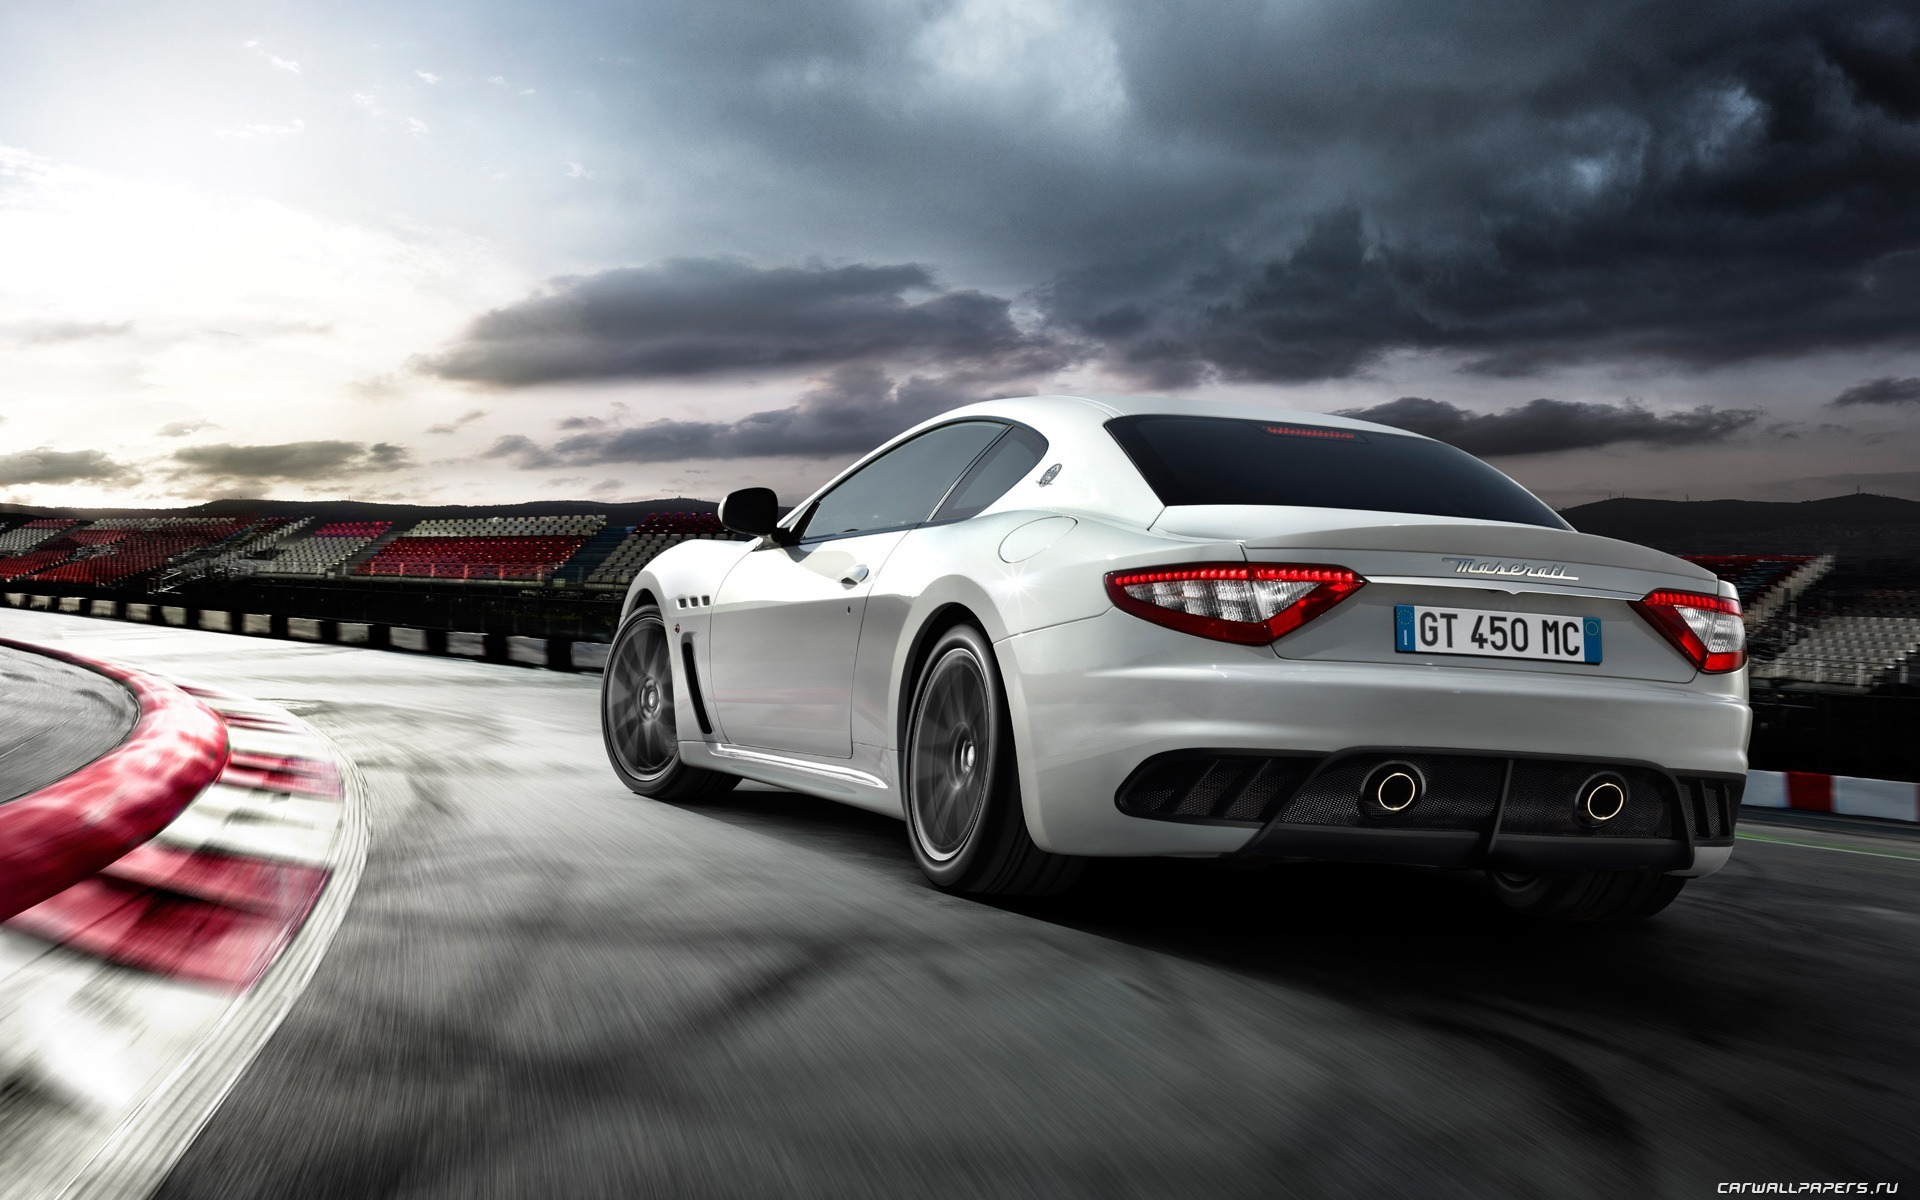 Maserati GranTurismo MC Stradale - 2010 HD wallpaper 12 - 1920x1200 ...